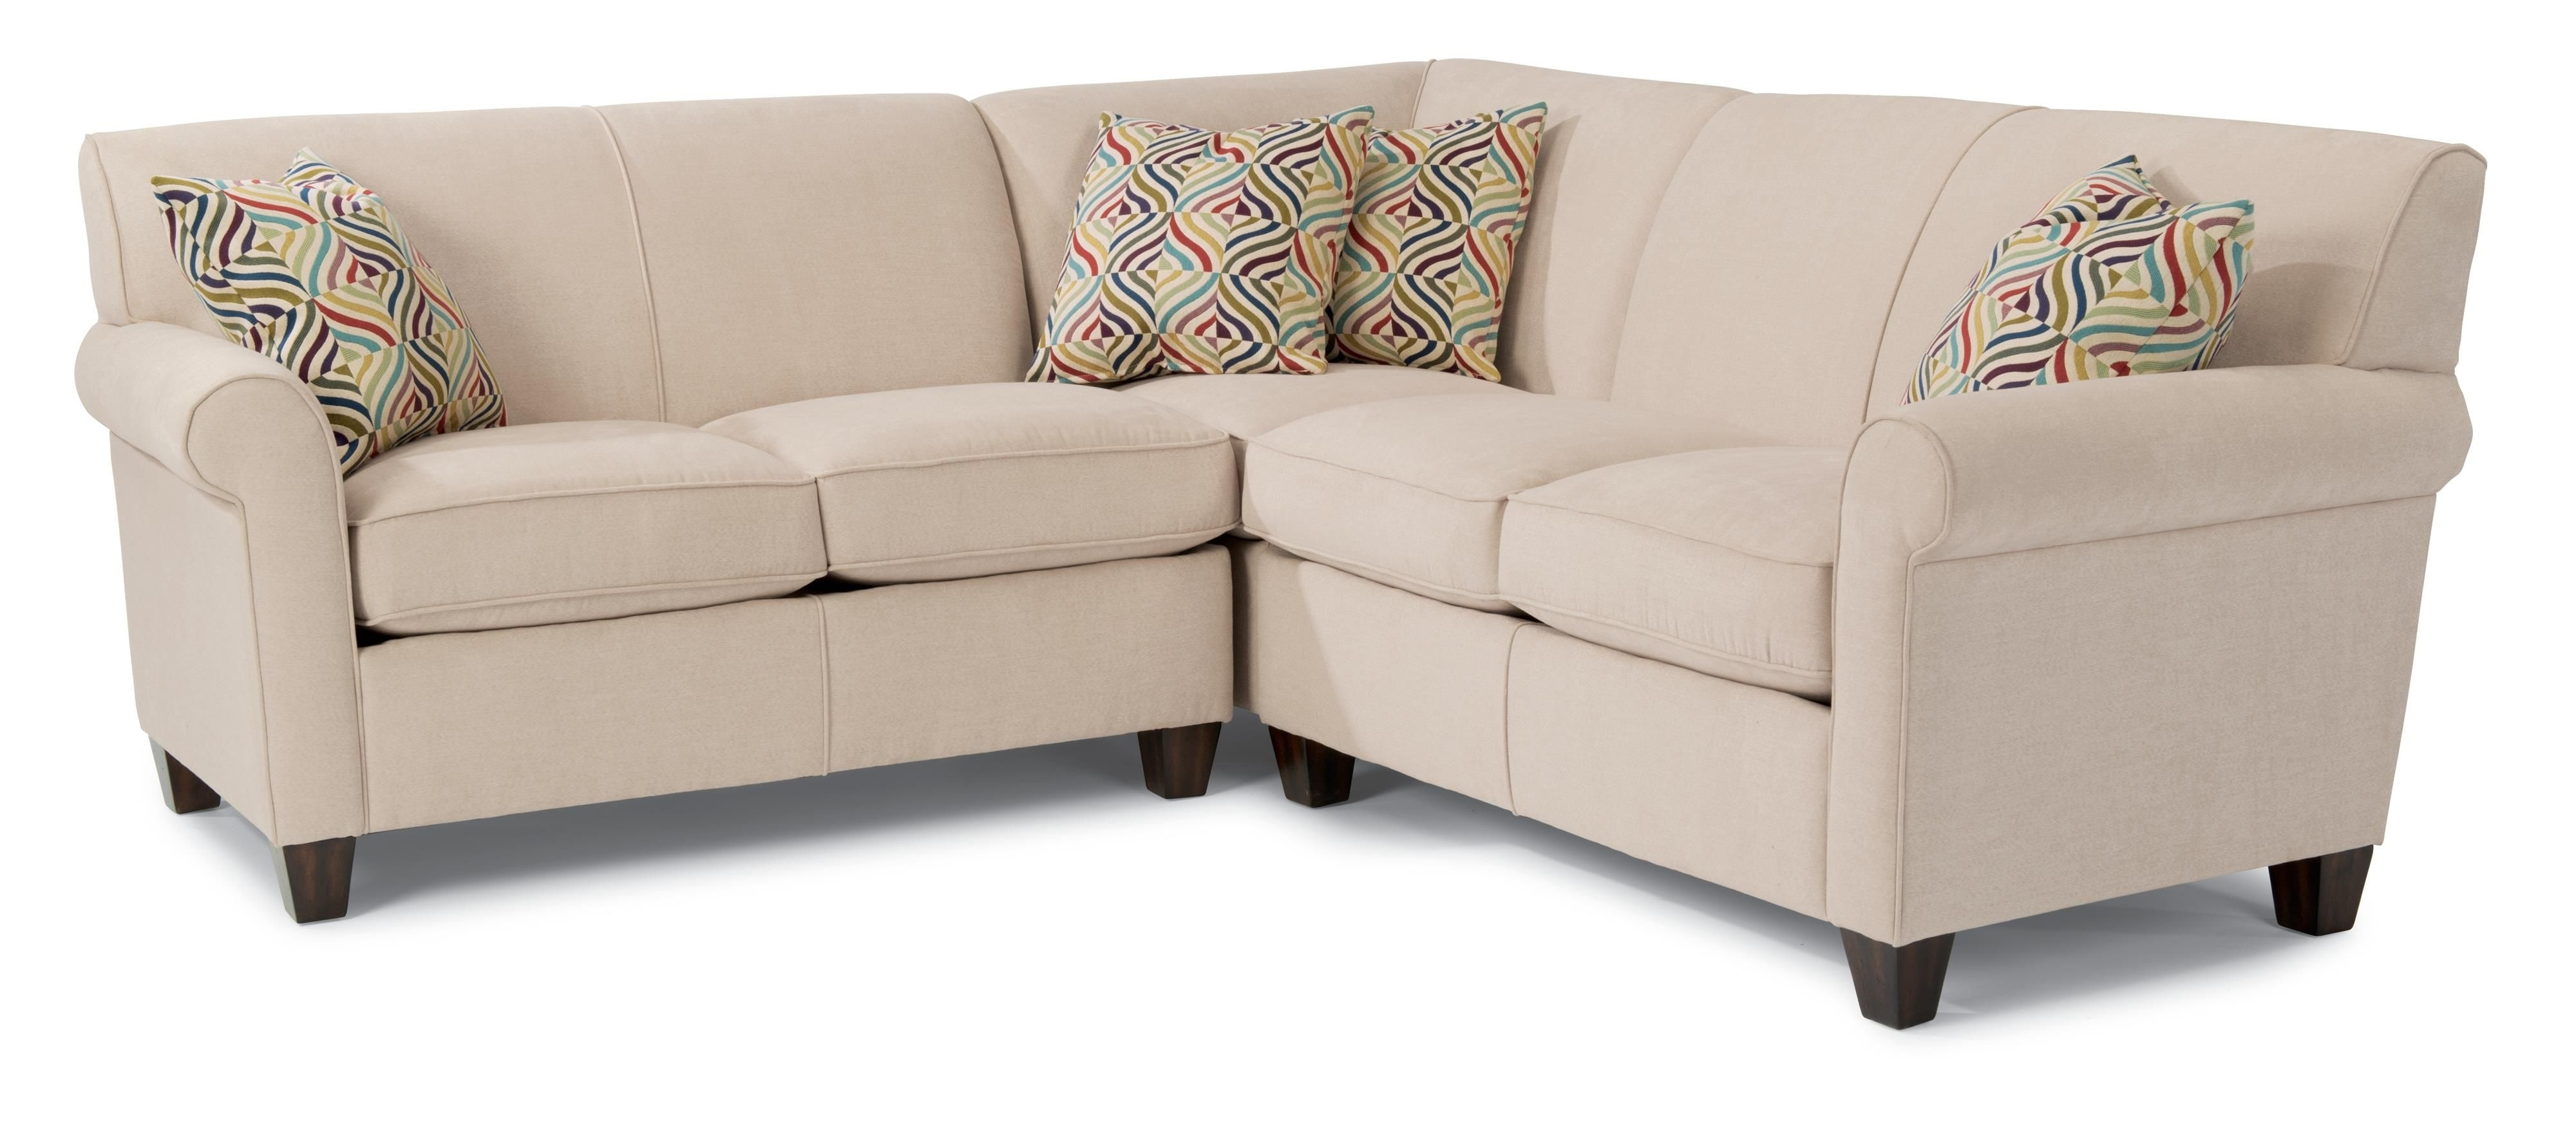 Most Recently Released Nova Scotia Sectional Sofas Throughout Dana Three Piece Corner Sectional Sofaflexsteel (View 17 of 20)